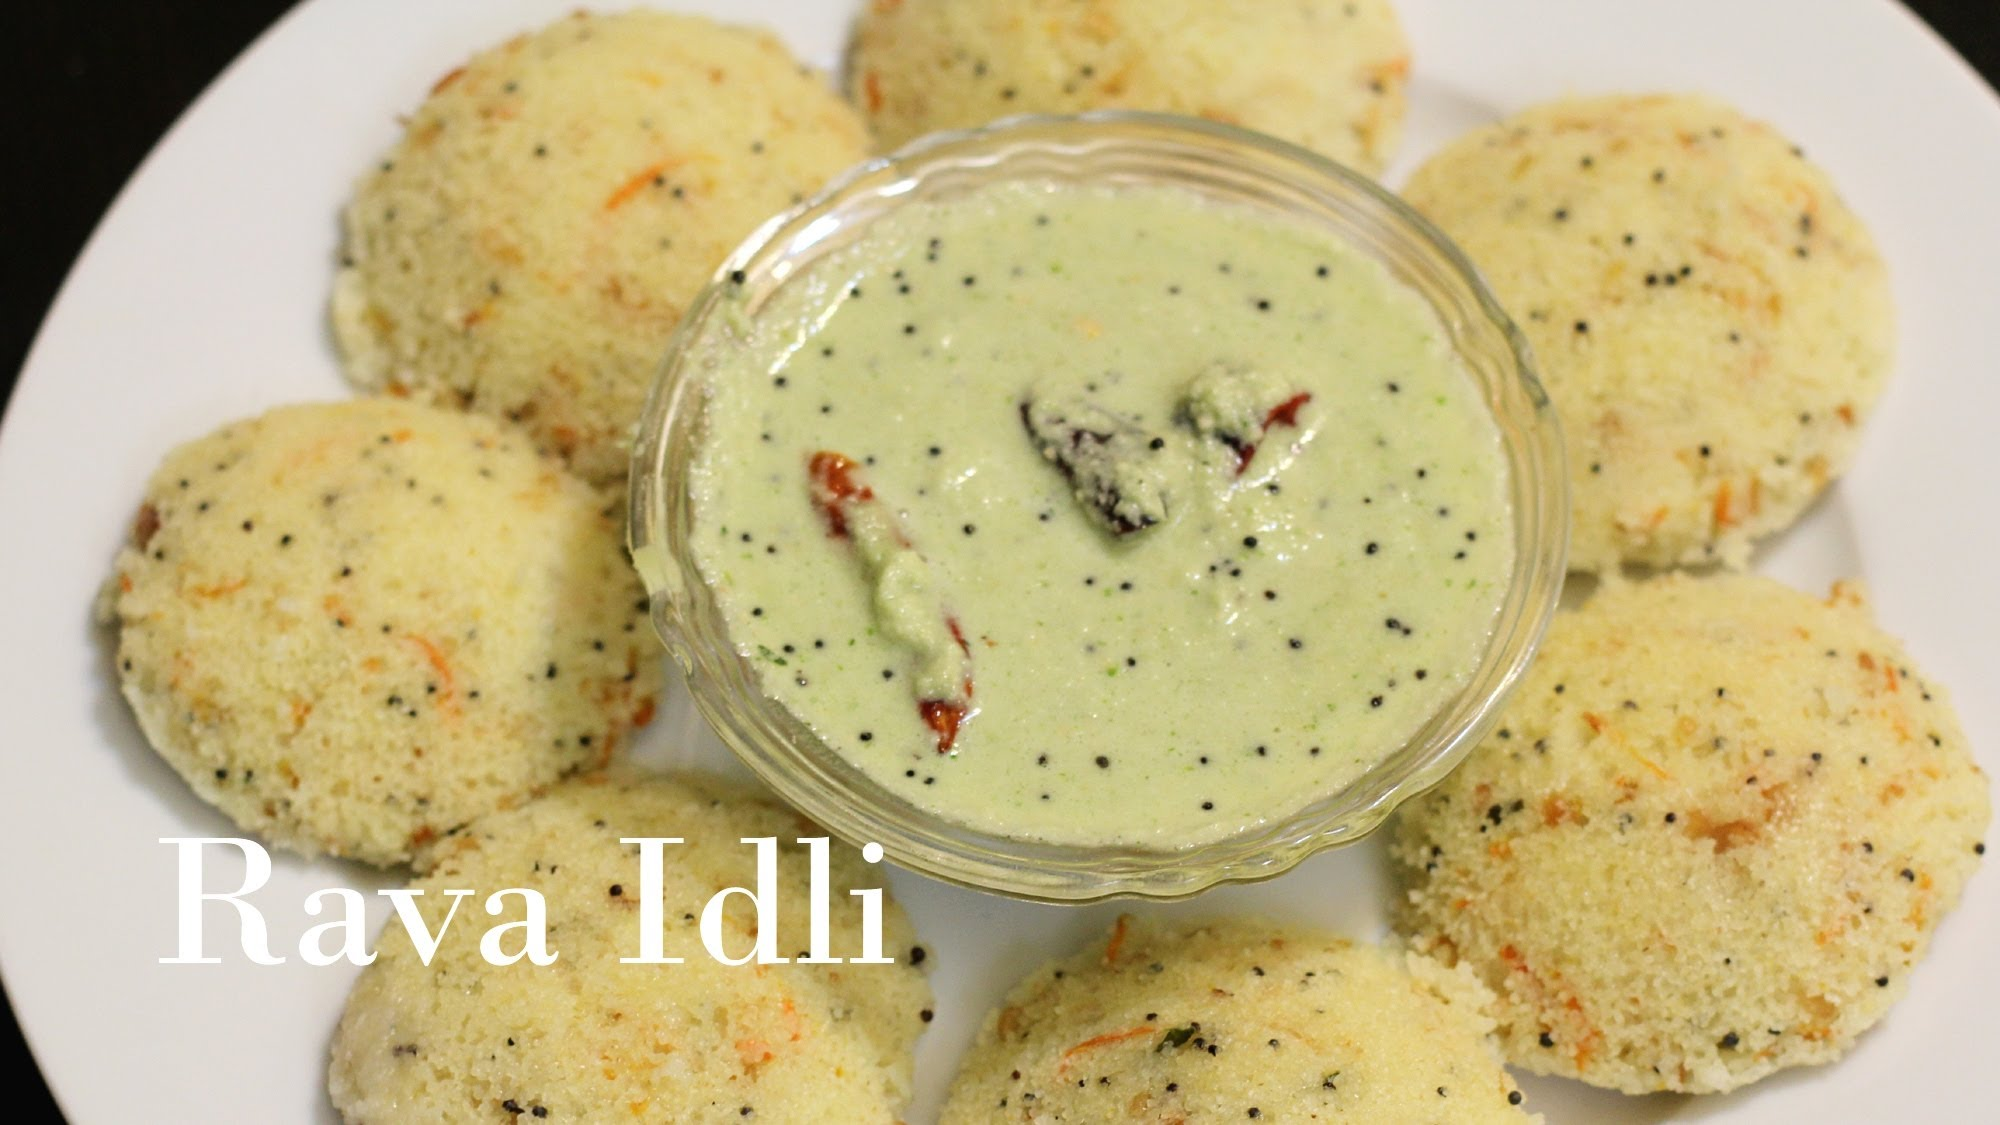 Rava sooji idli semolina dumplings recipes quick easy indian snack rava sooji idli semolina dumplings recipes quick easy indian snack appetizers breakfast recipe qtiny forumfinder Image collections